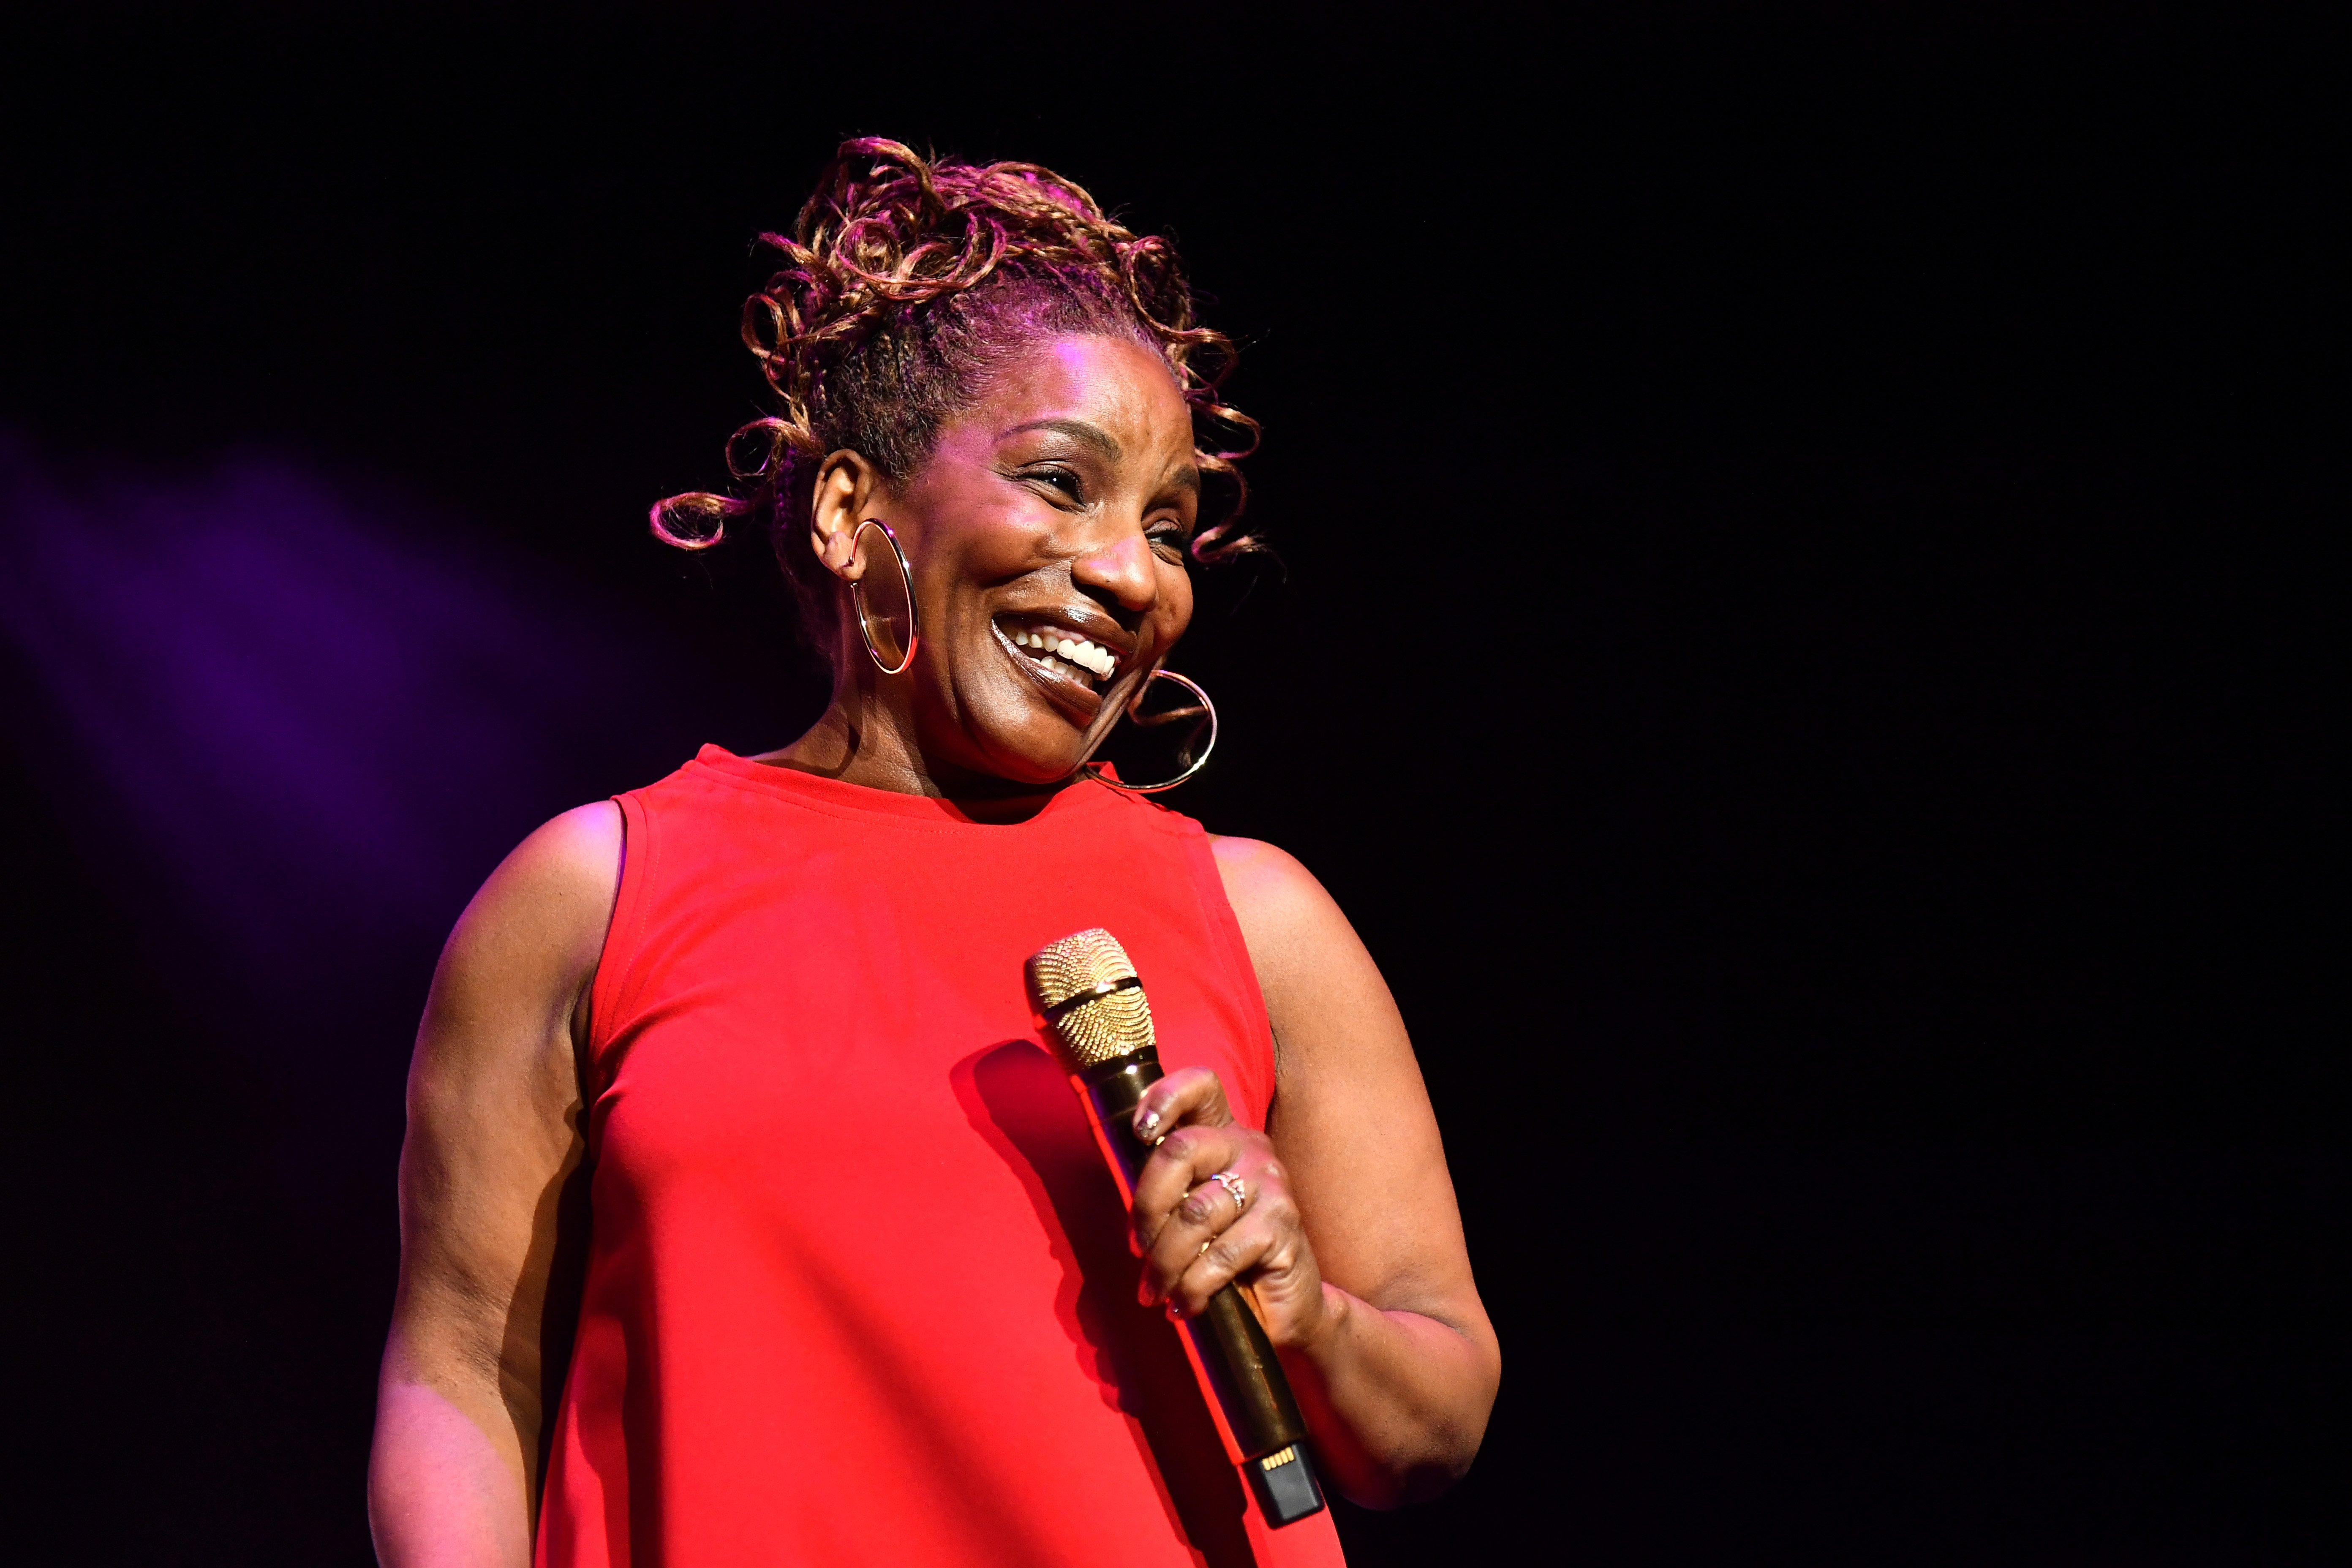 Stephanie Mills performs onstage during the 2019 Black Friday R&B Mega Fest at State Farm Arena on November 29, 2019 in Atlanta, Georgia. I Image: Getty Images.